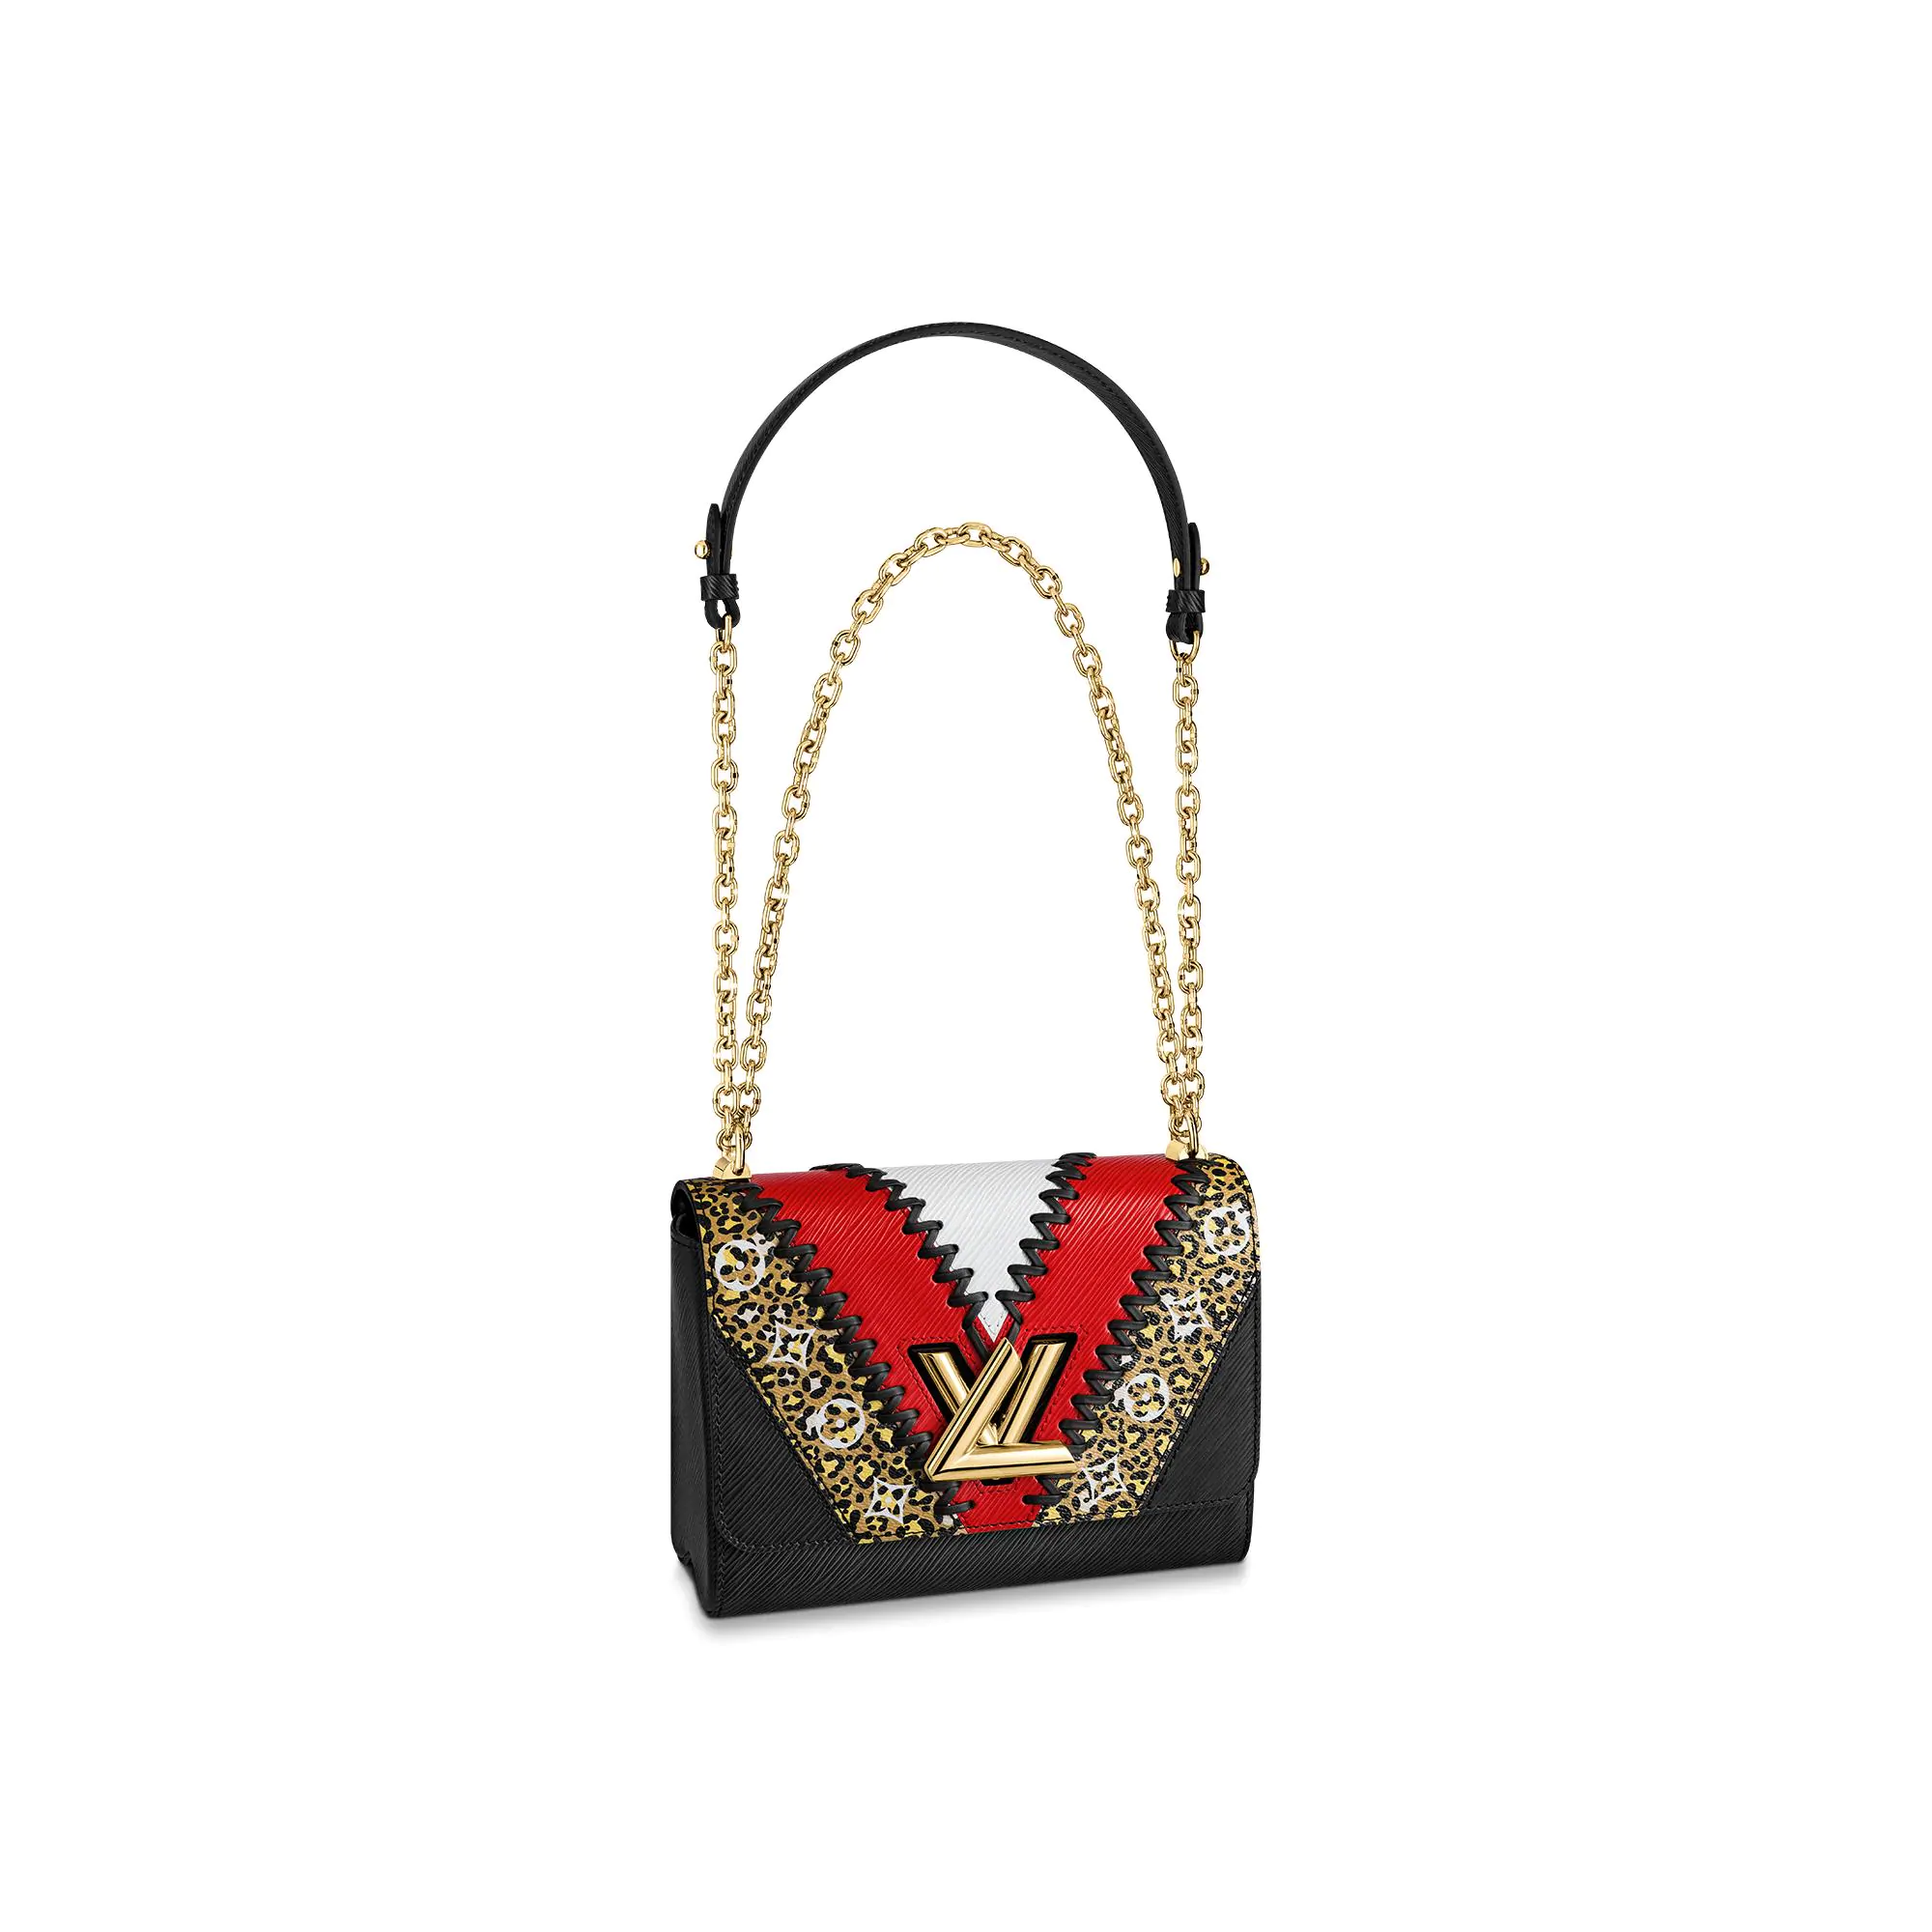 Louis Vuitton Twist MM in Animal Print V Epi Leather M53926 bag